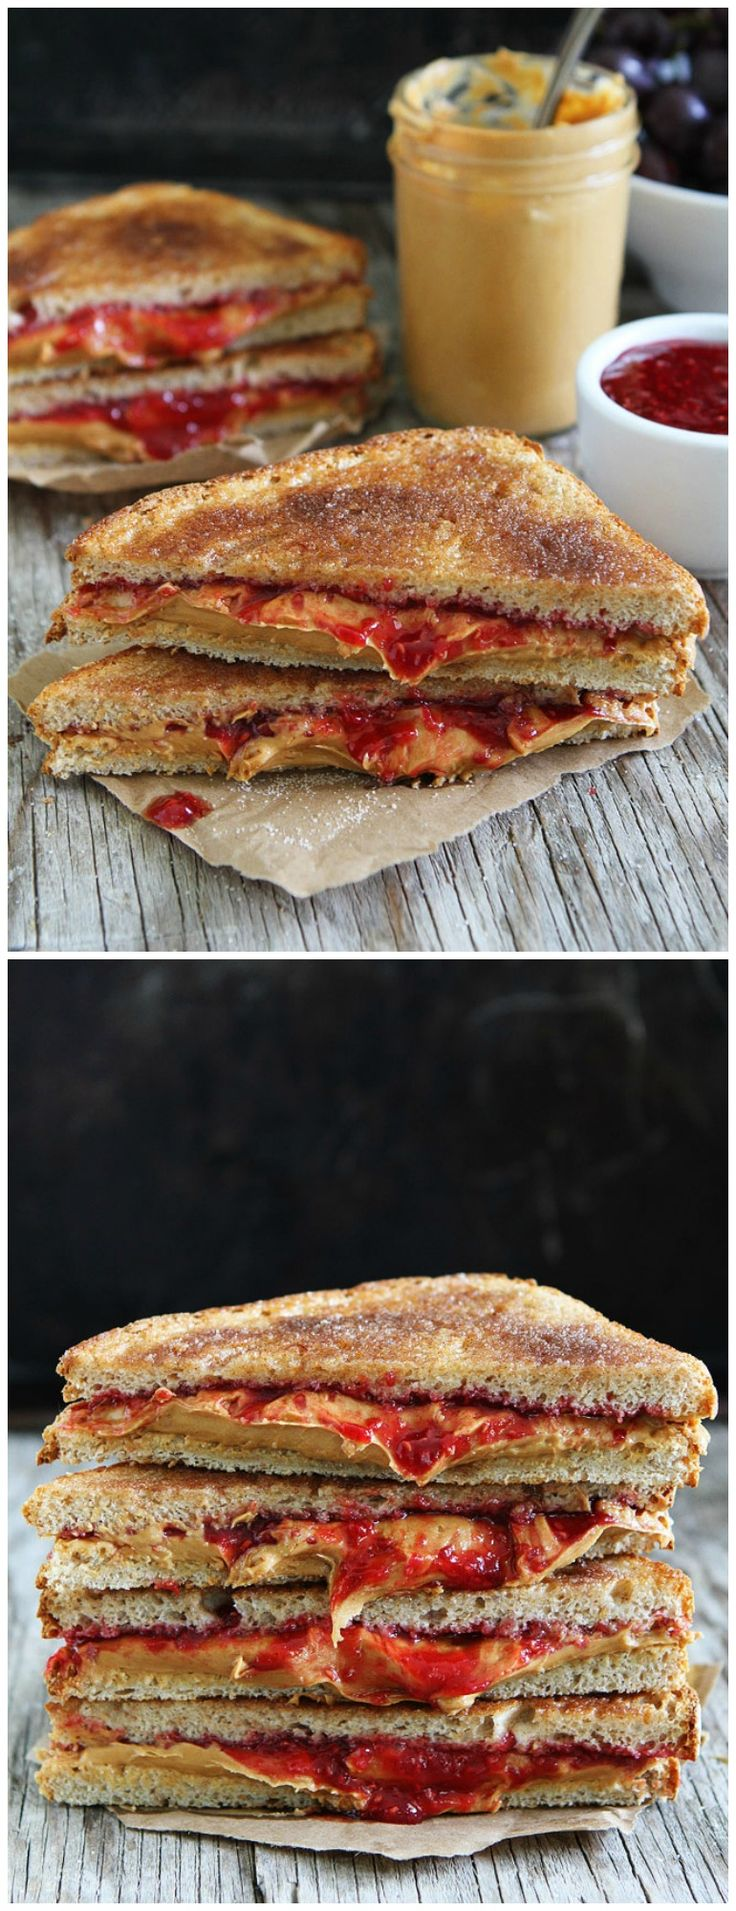 Cinnamon Toast PB&J Recipe on twopeasandtheirpo... Two classics come together to create one amazing sandwich! This is the best peanut butter and jelly sandwich I have ever had!